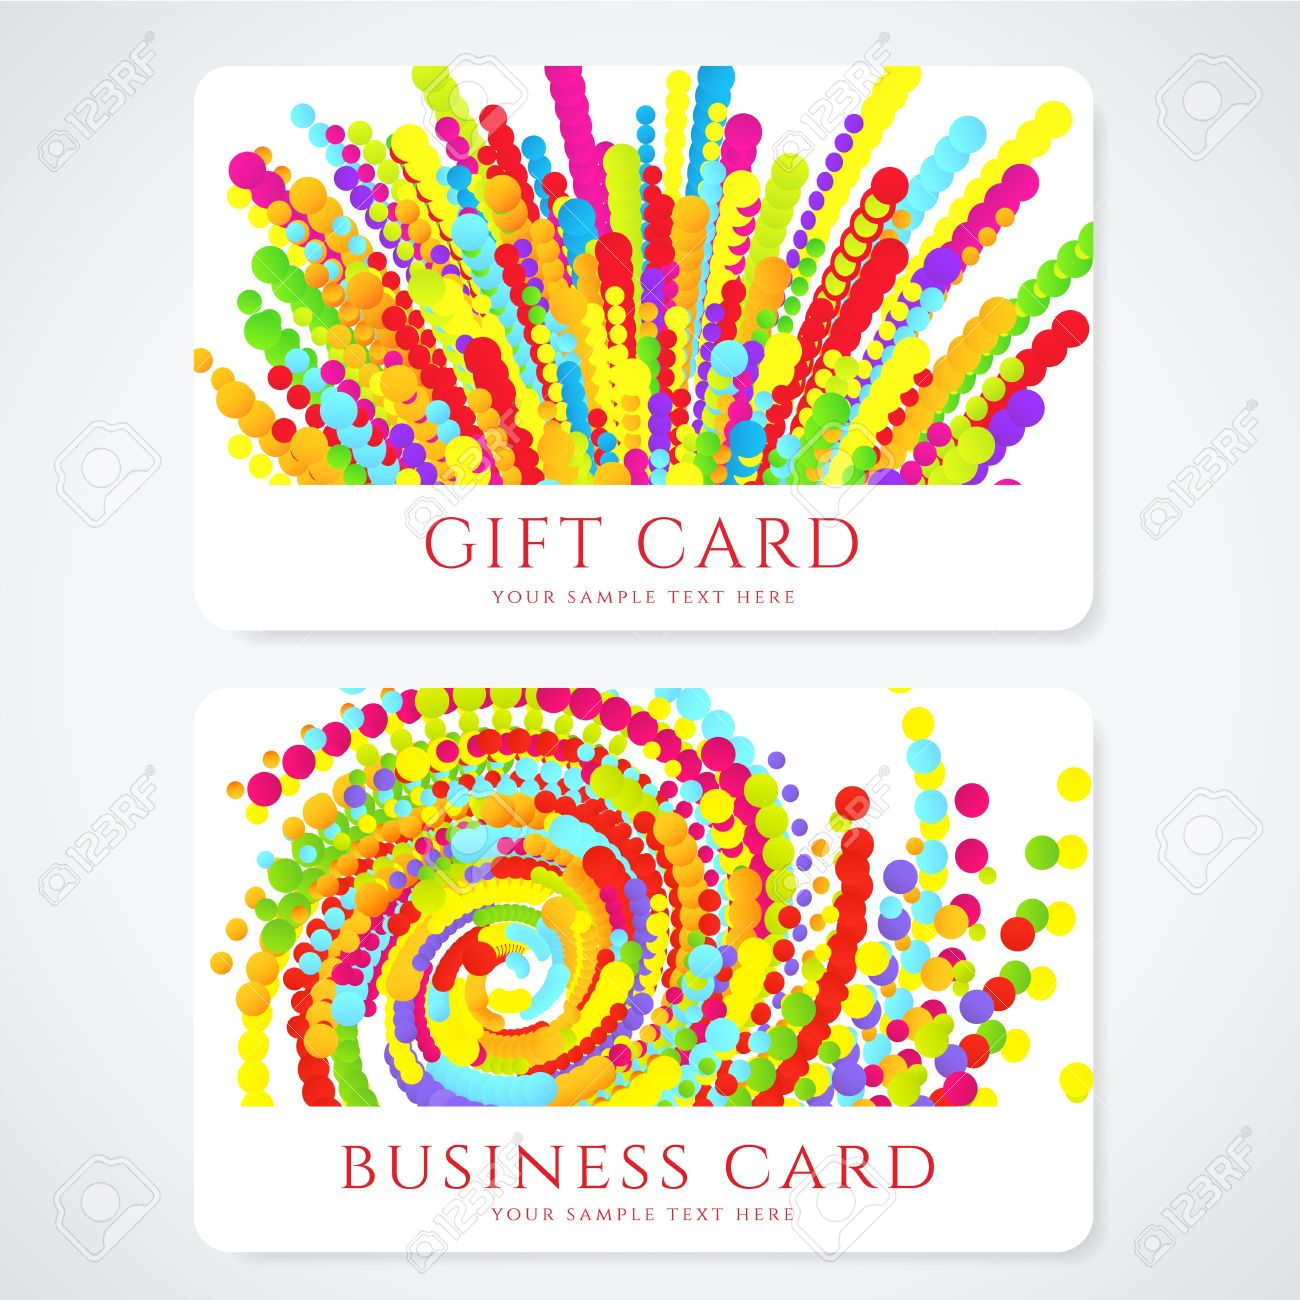 Colorful Business Or Gift Card Template With Abstract Pattern ...